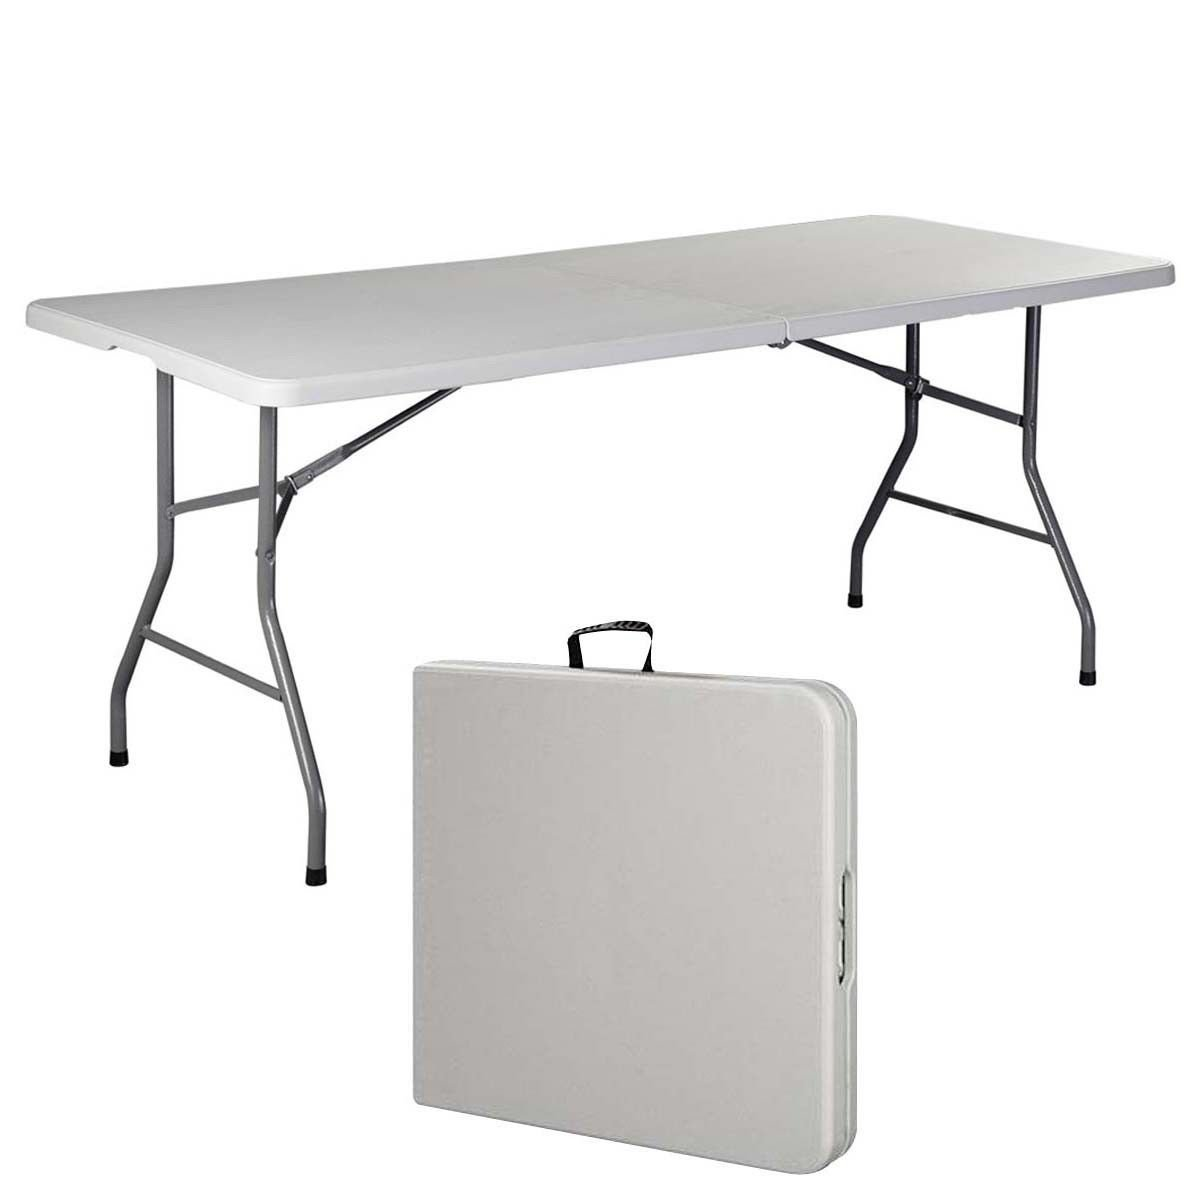 6' Folding Table Portable Plastic Indoor Outdoor Picnic Party Dining Camp Tables (White) by 6' Folding